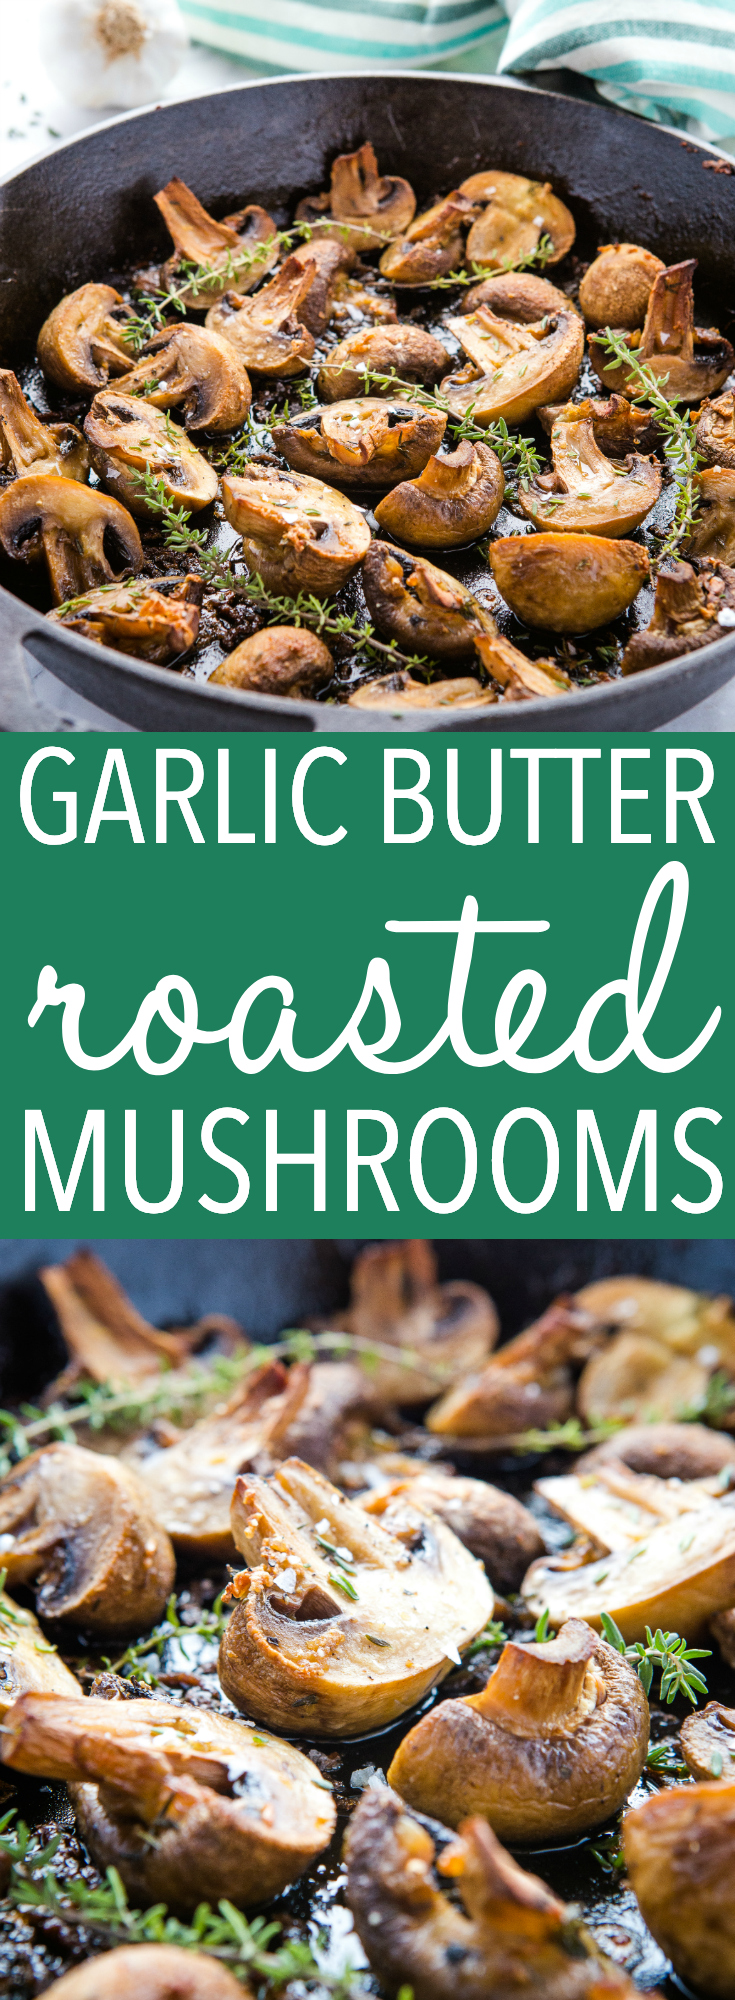 These Garlic Butter Roasted Mushrooms are the perfect side dish to serve with grilled meats or even on salad! Flavoured with real butter, fresh garlic and savoury thyme! Recipe from thebusybaker.ca! #mushrooms #roasted #garlic #butter #steak #side #sidedish #castiron #savoury #easy via @busybakerblog